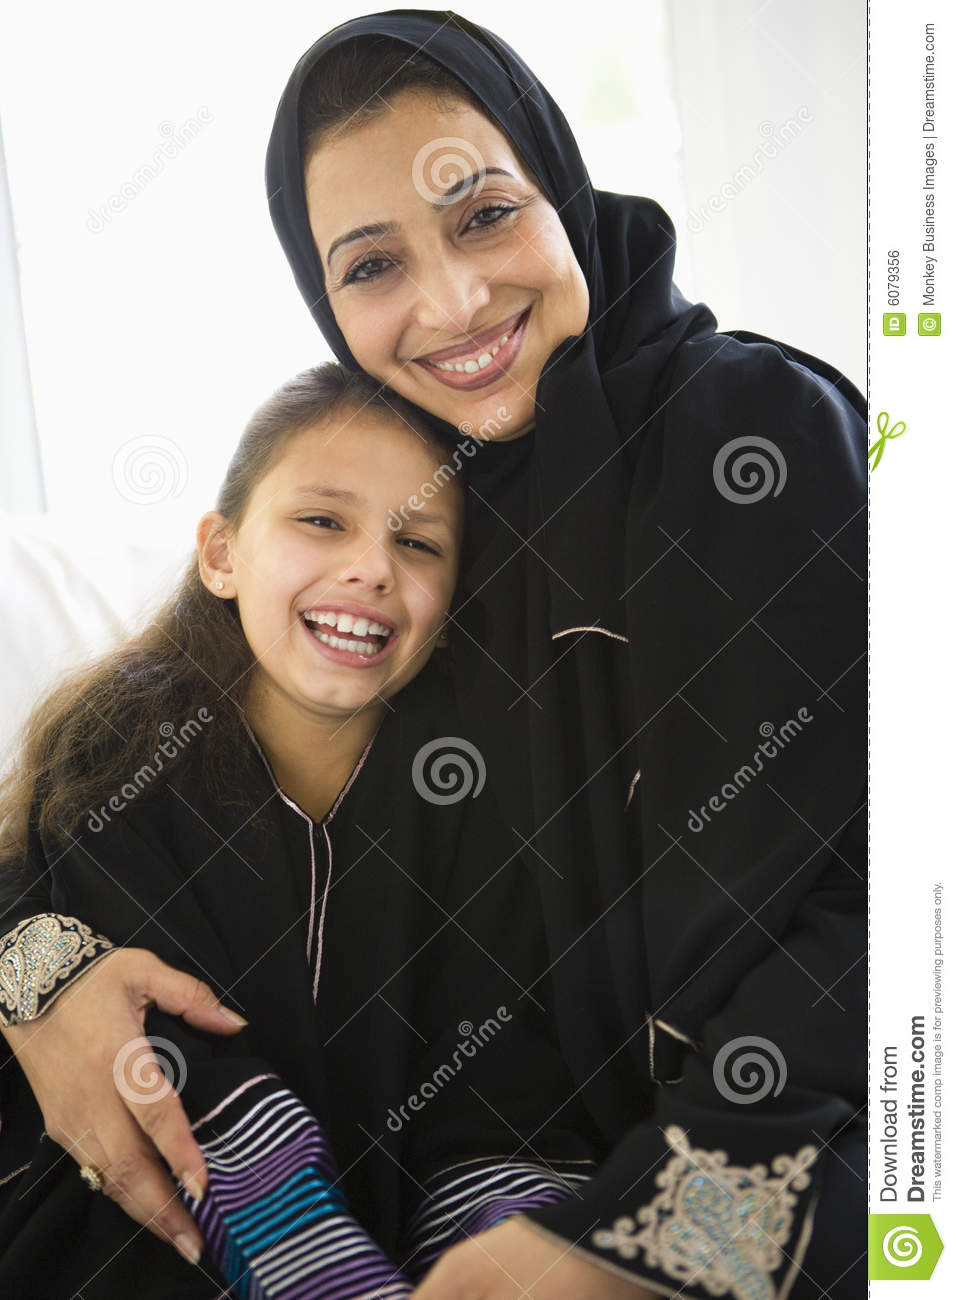 middle eastern single women in gratis Find middle eastern personals listings on oodle classifieds join millions of people using oodle to find great personal ads don't miss what's happening in your neighborhood.